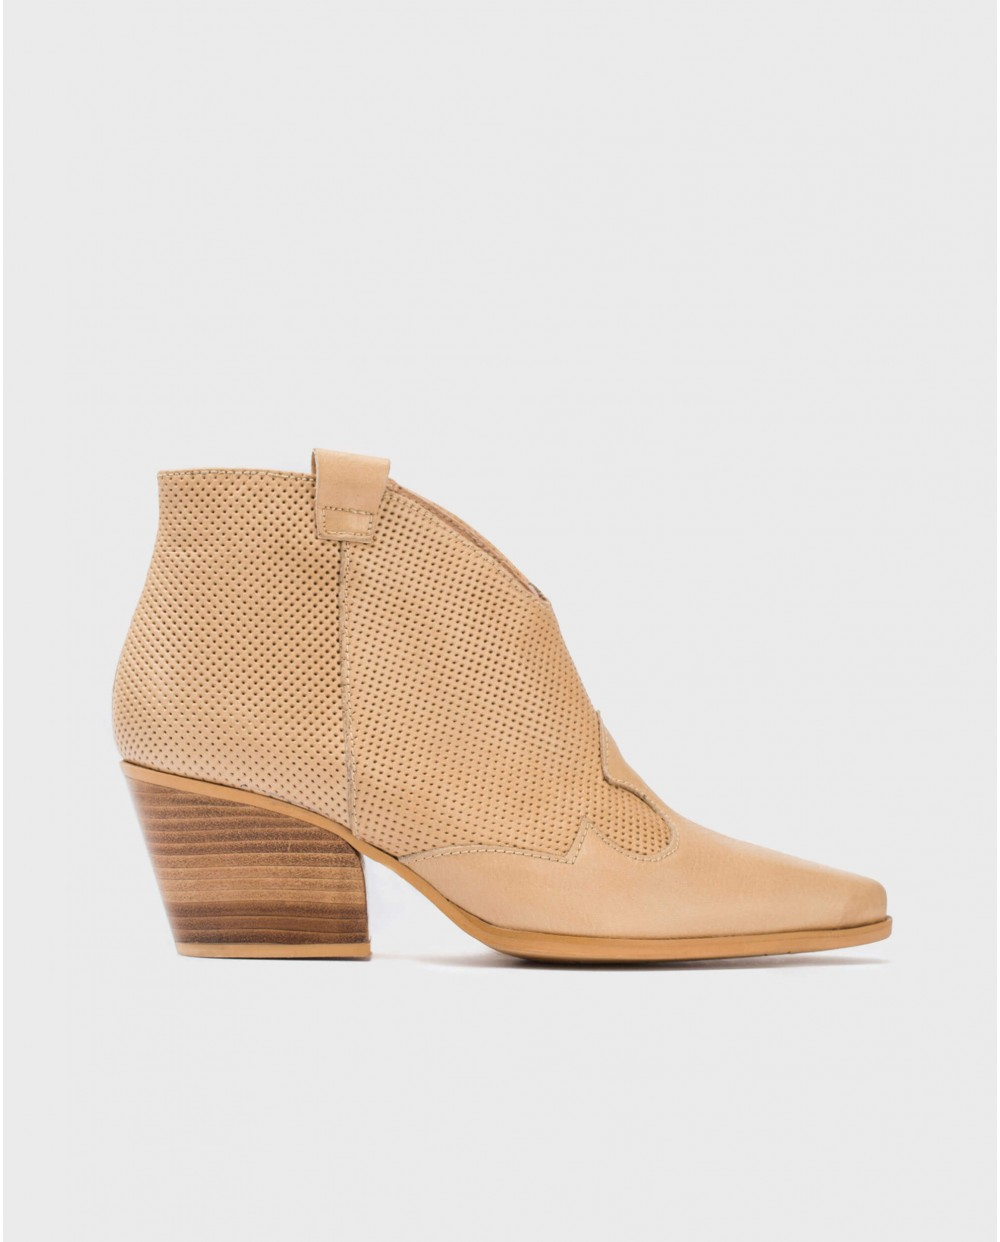 Wonders-Ankle Boots-Micro-perforated leather ankle boot